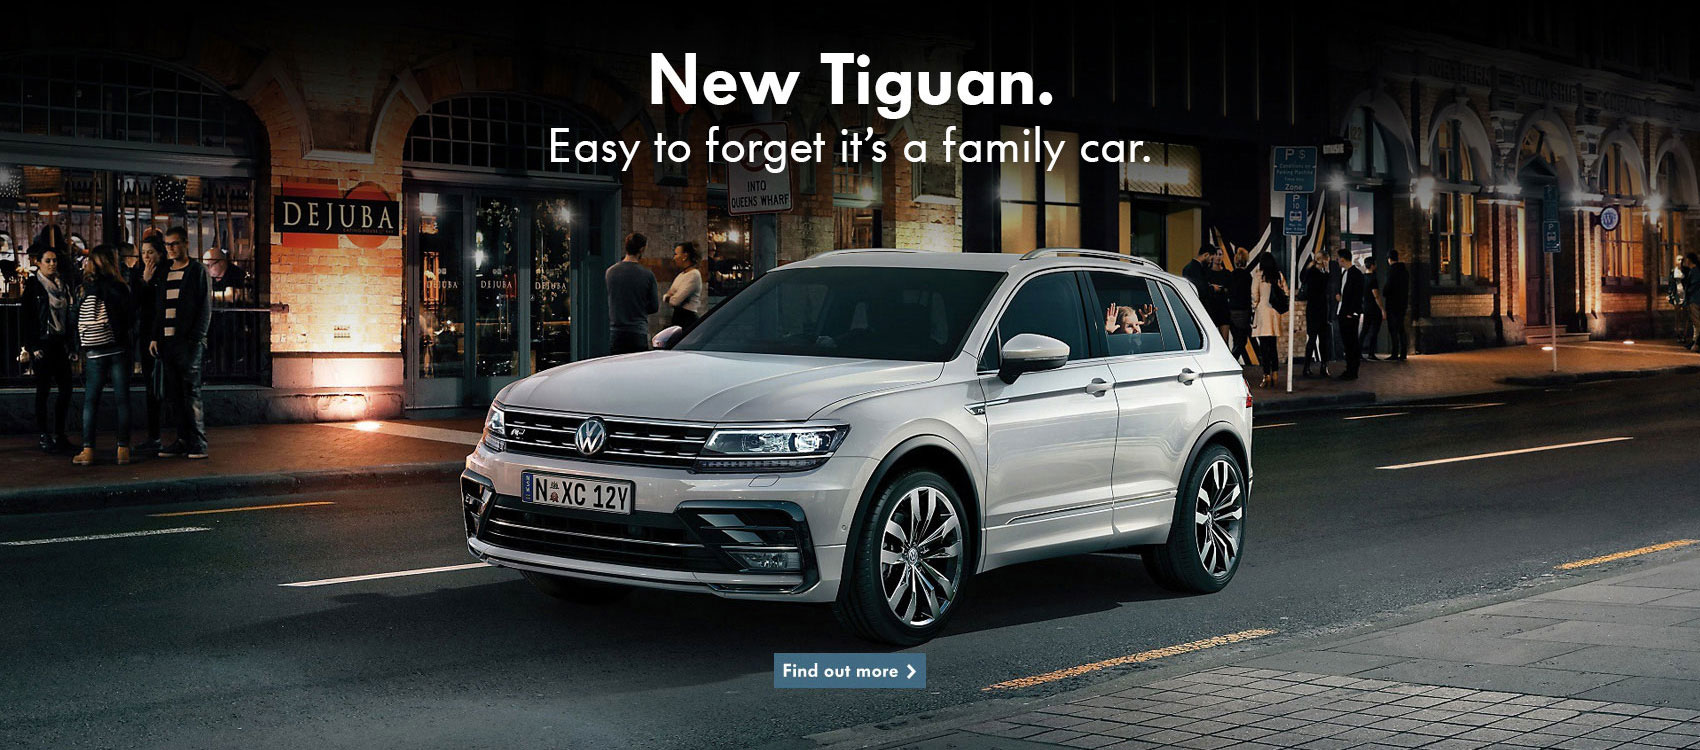 New Volkswagen Tiguan, easy to forget it's a family car. Available at NMG VW, your local Brisbane dealer.